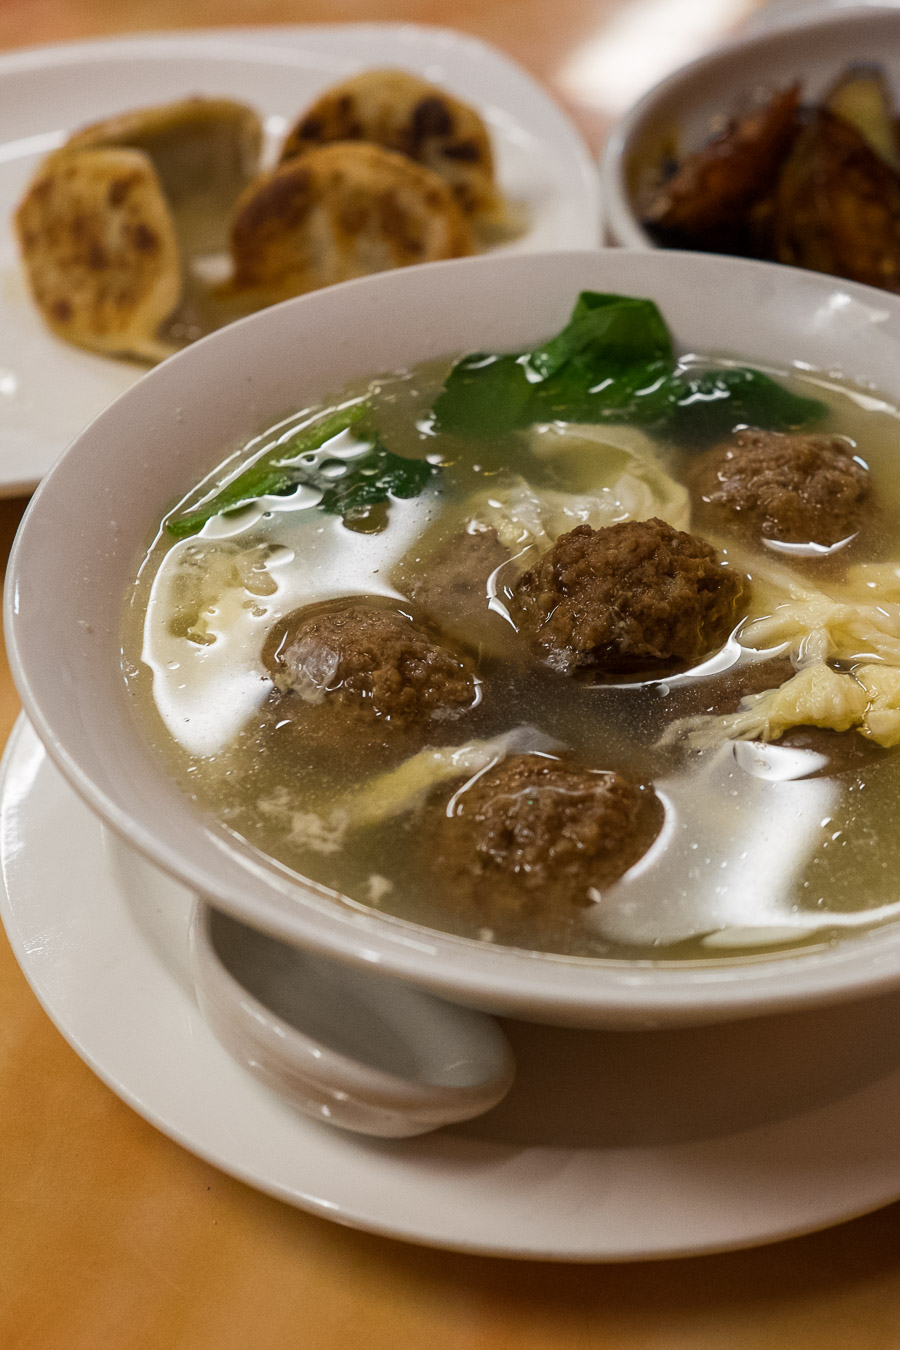 Spinach and meatball soup - as always!